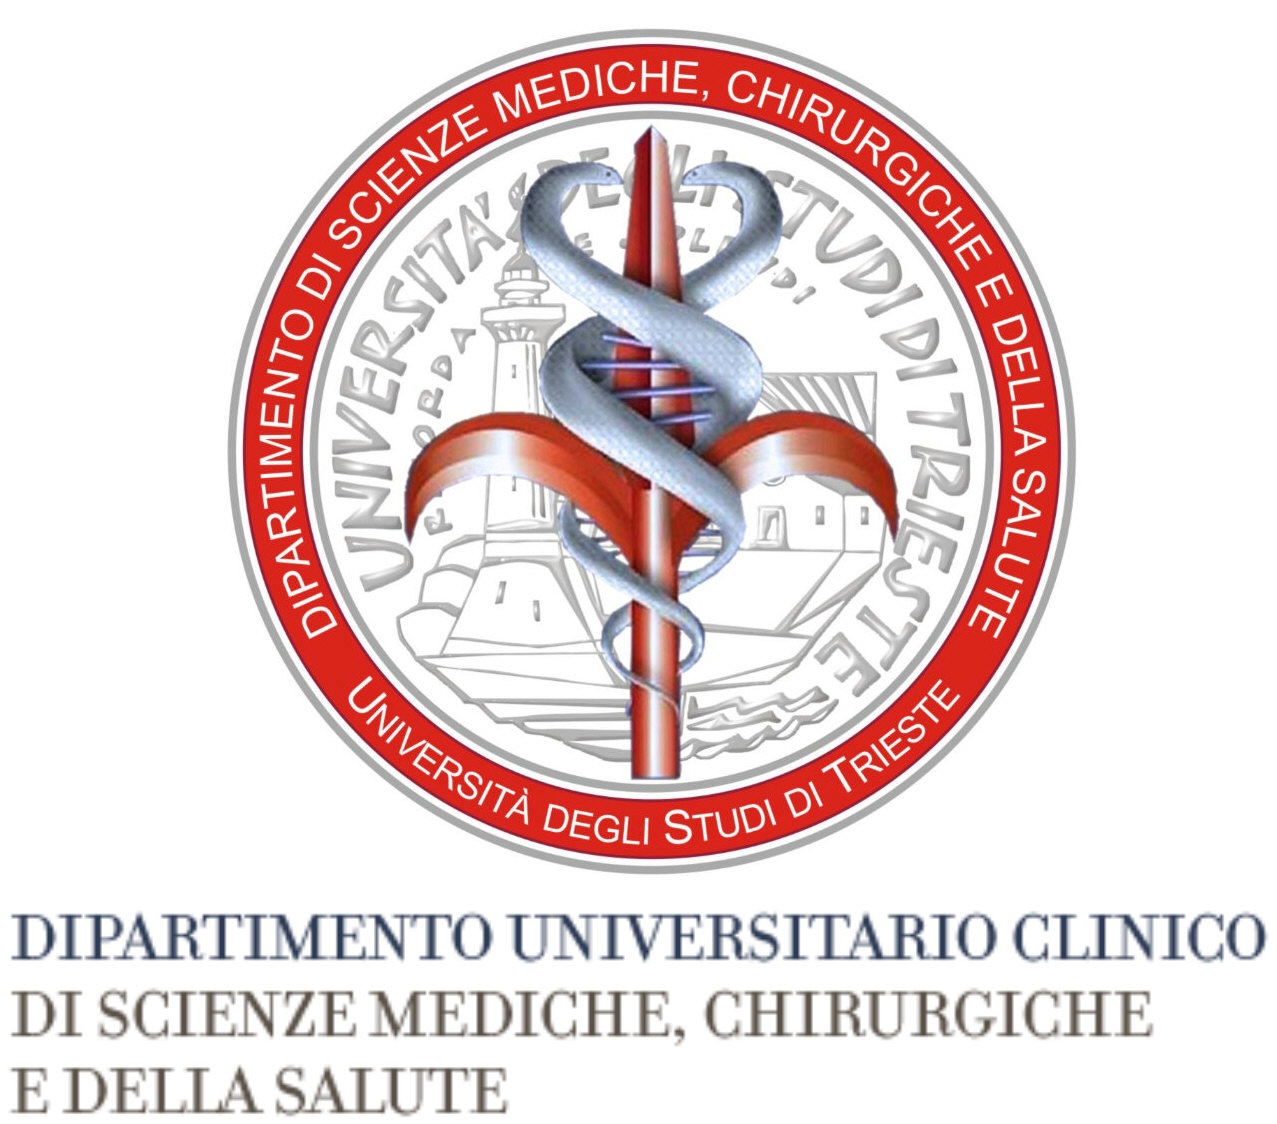 Dipartimento Universitario Clinico di Scienze mediche